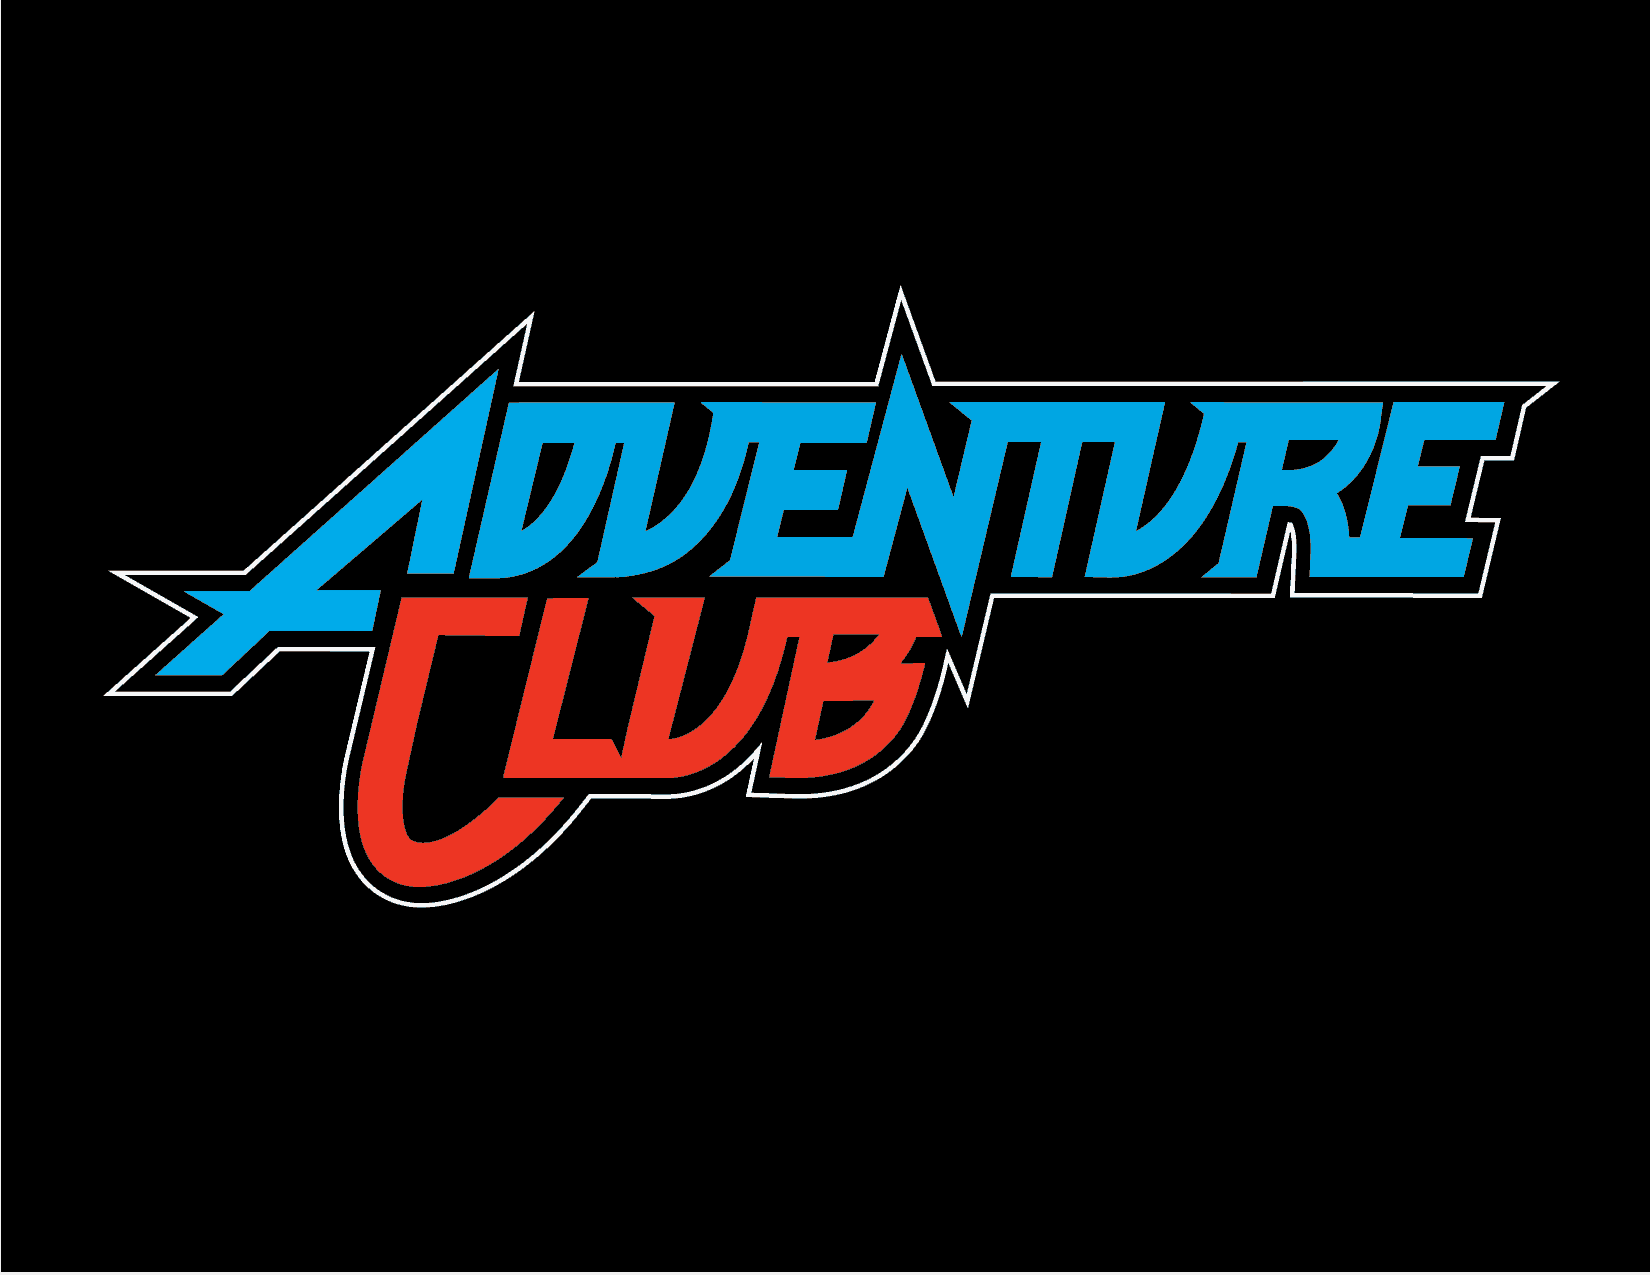 Adventure Club, Superheroes Vol. 2